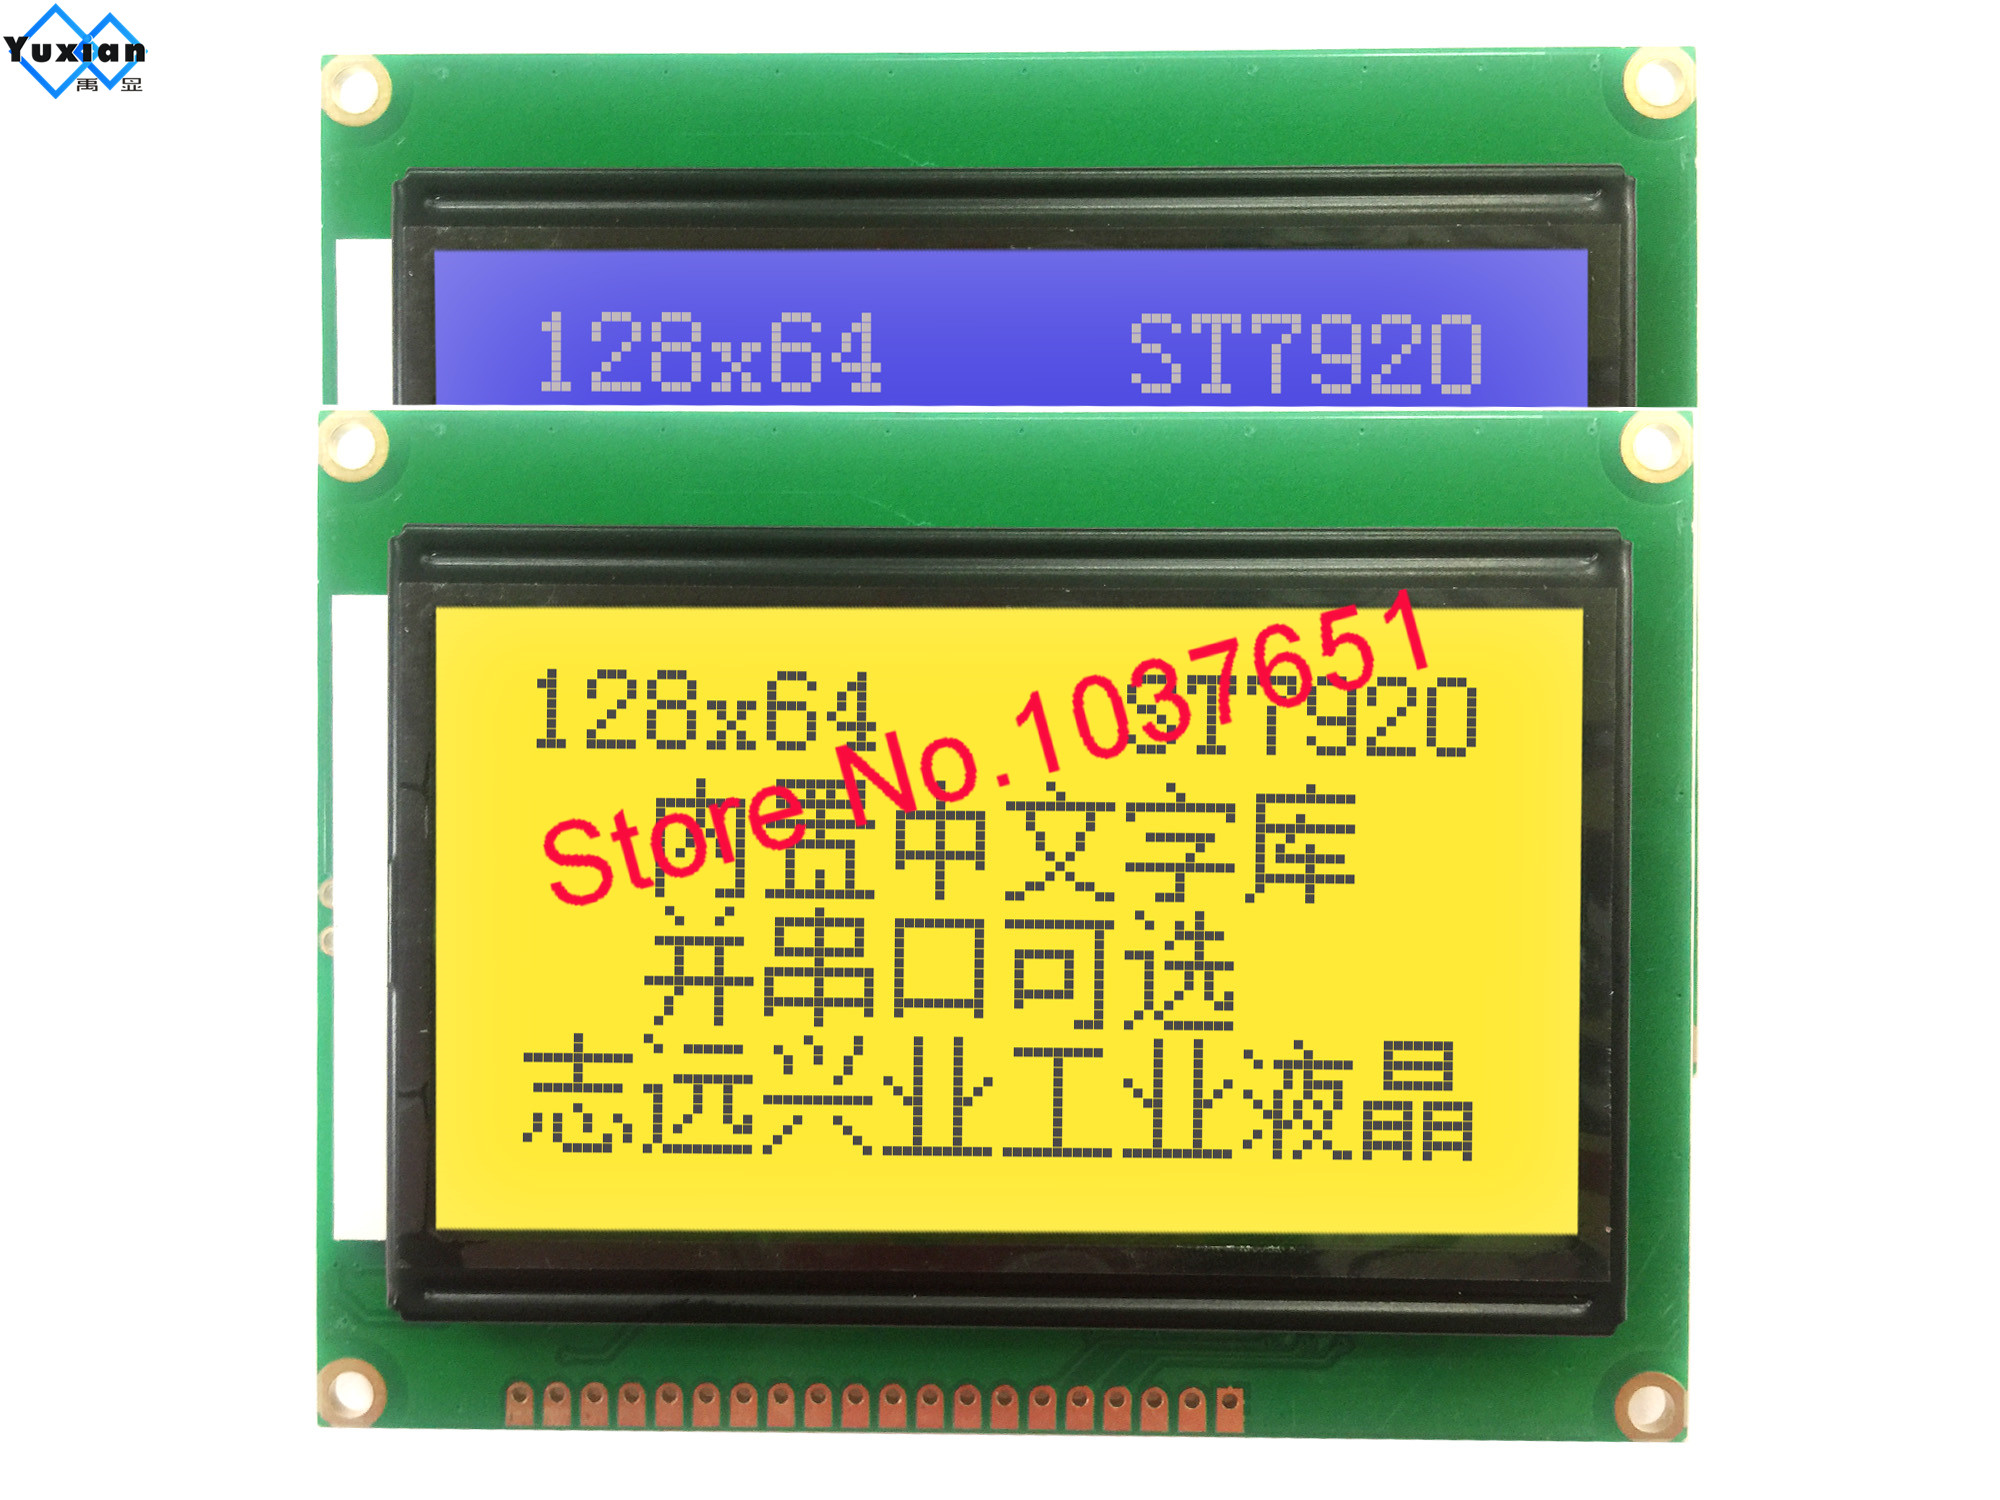 12864 ST7920  Parallel And Serial  SPI  Lcd Display Module Green  Blue 12864B V2.0 1pcs Free Ship